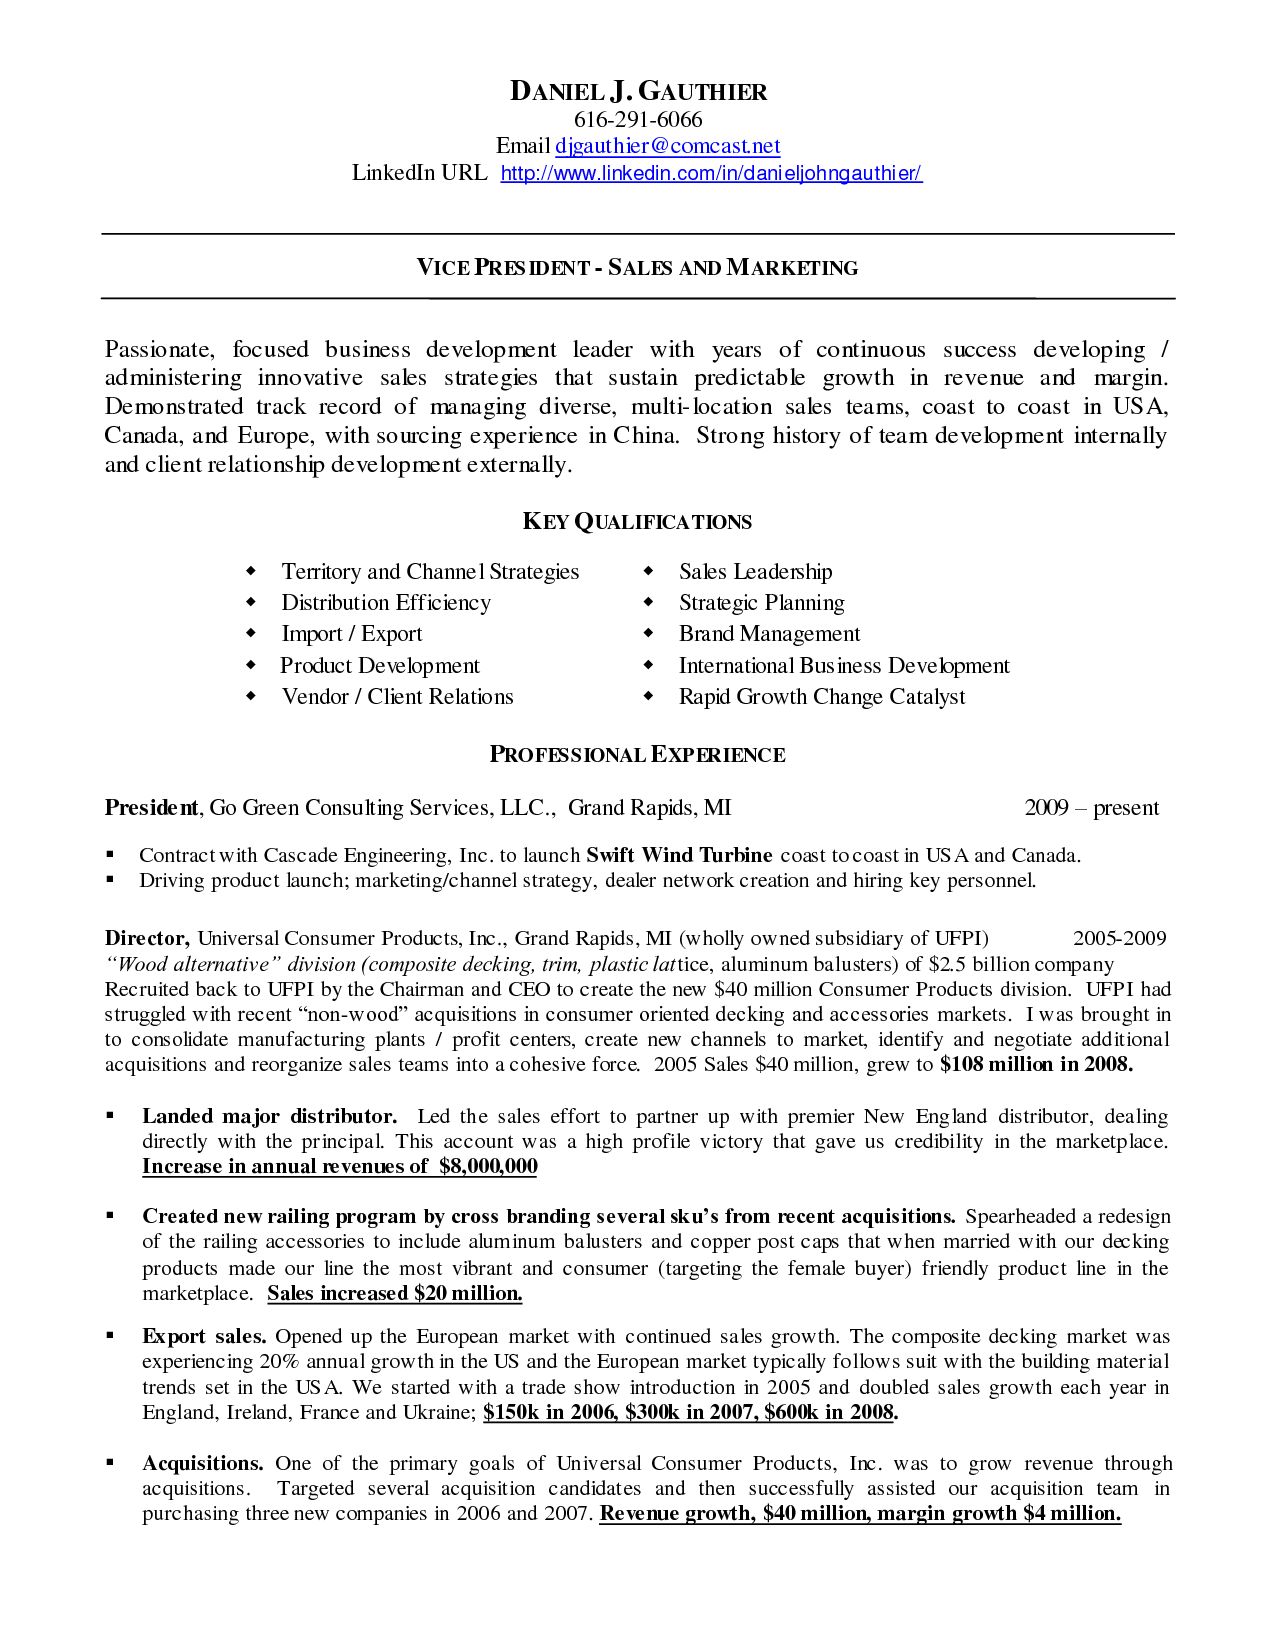 Hyperlink Email In Resume Linkedin Url On Resume Example Vice President Sales